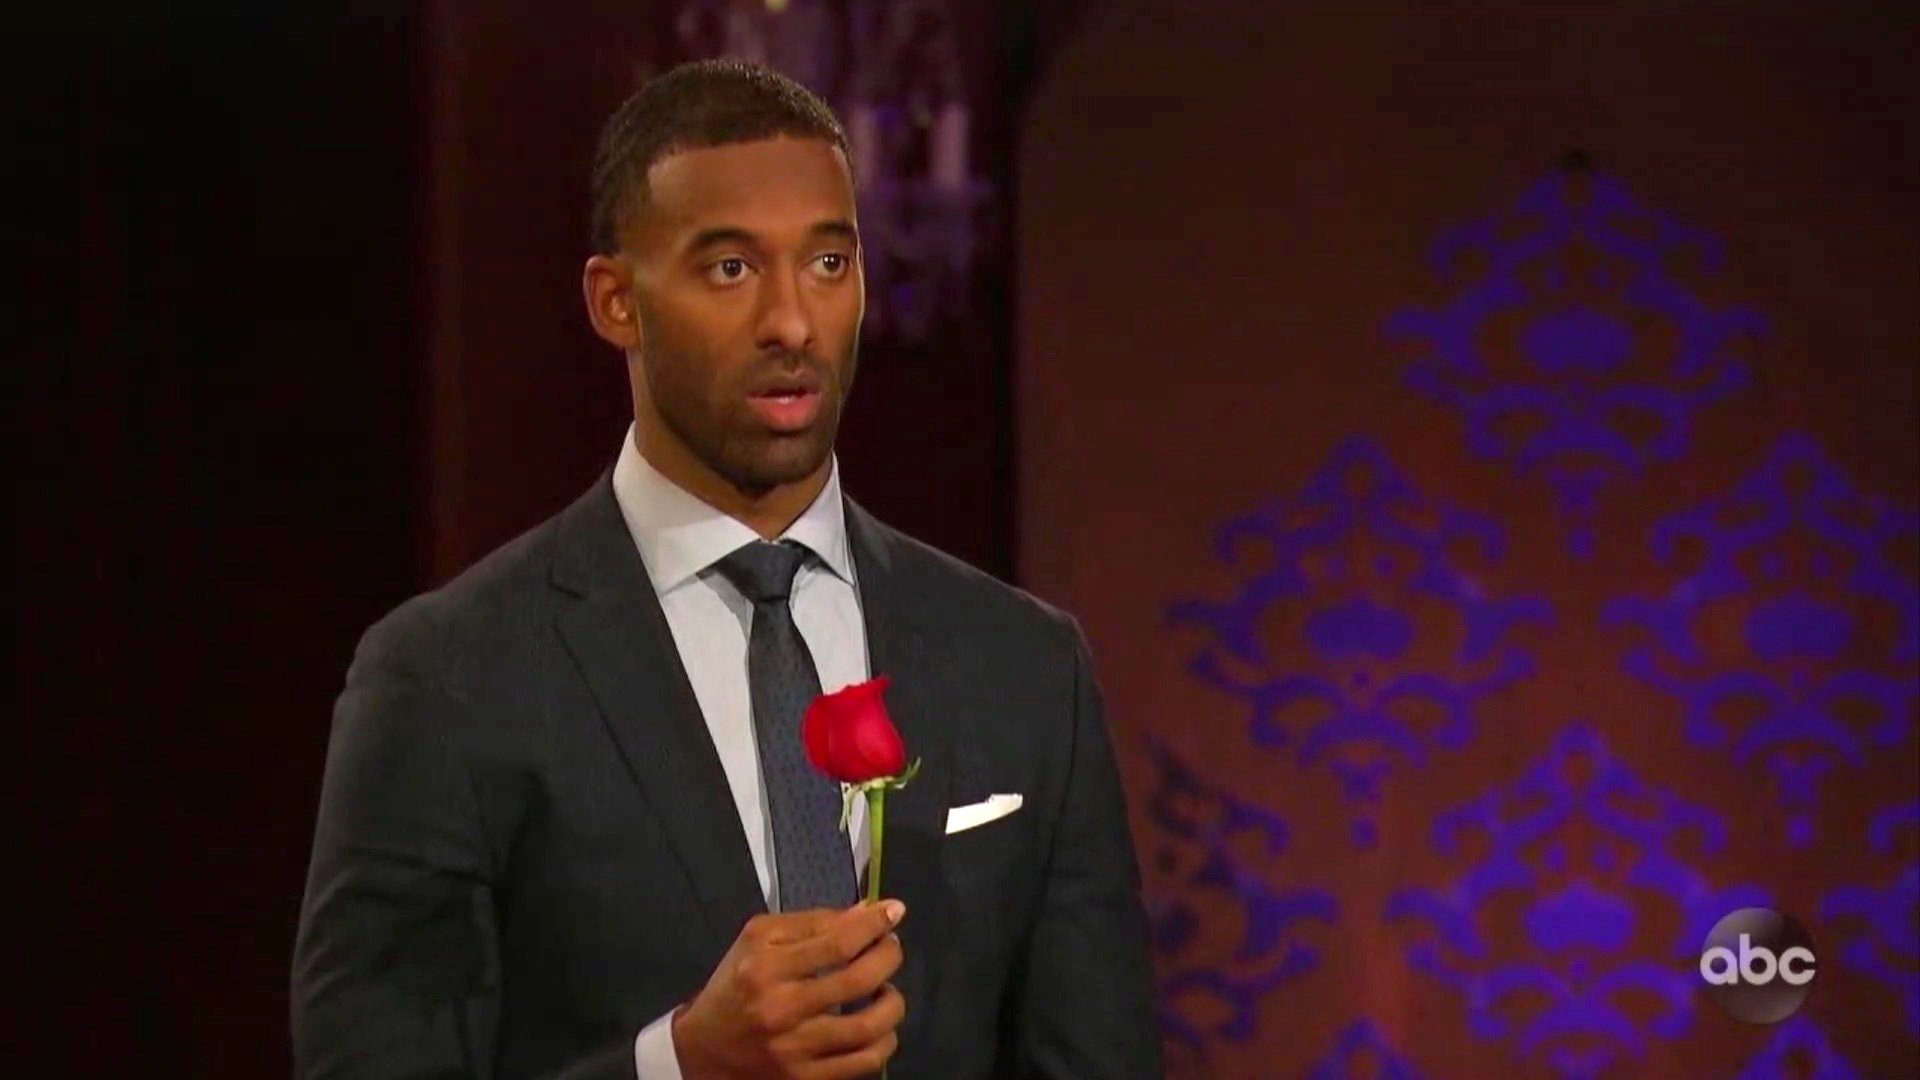 Medics called onto 'Bachelor' set after contestant nearly collapses during rose ceremony